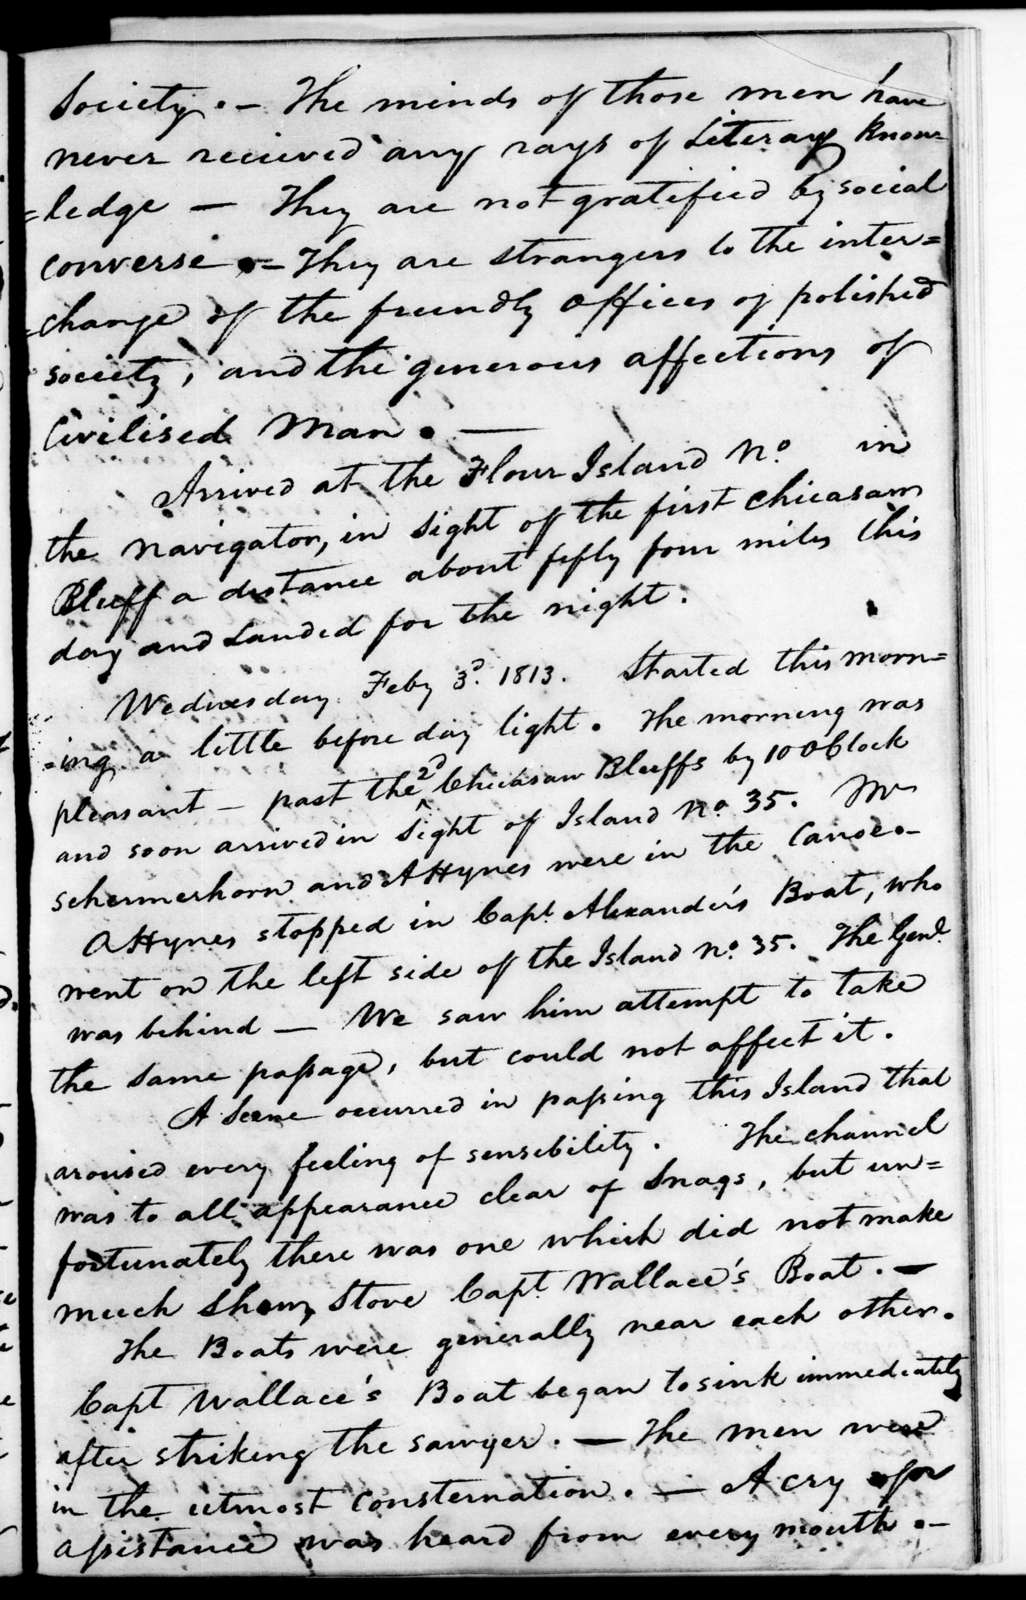 Journal of the march. Journal of trip down the Mississippi River, January 1813 to March 1813